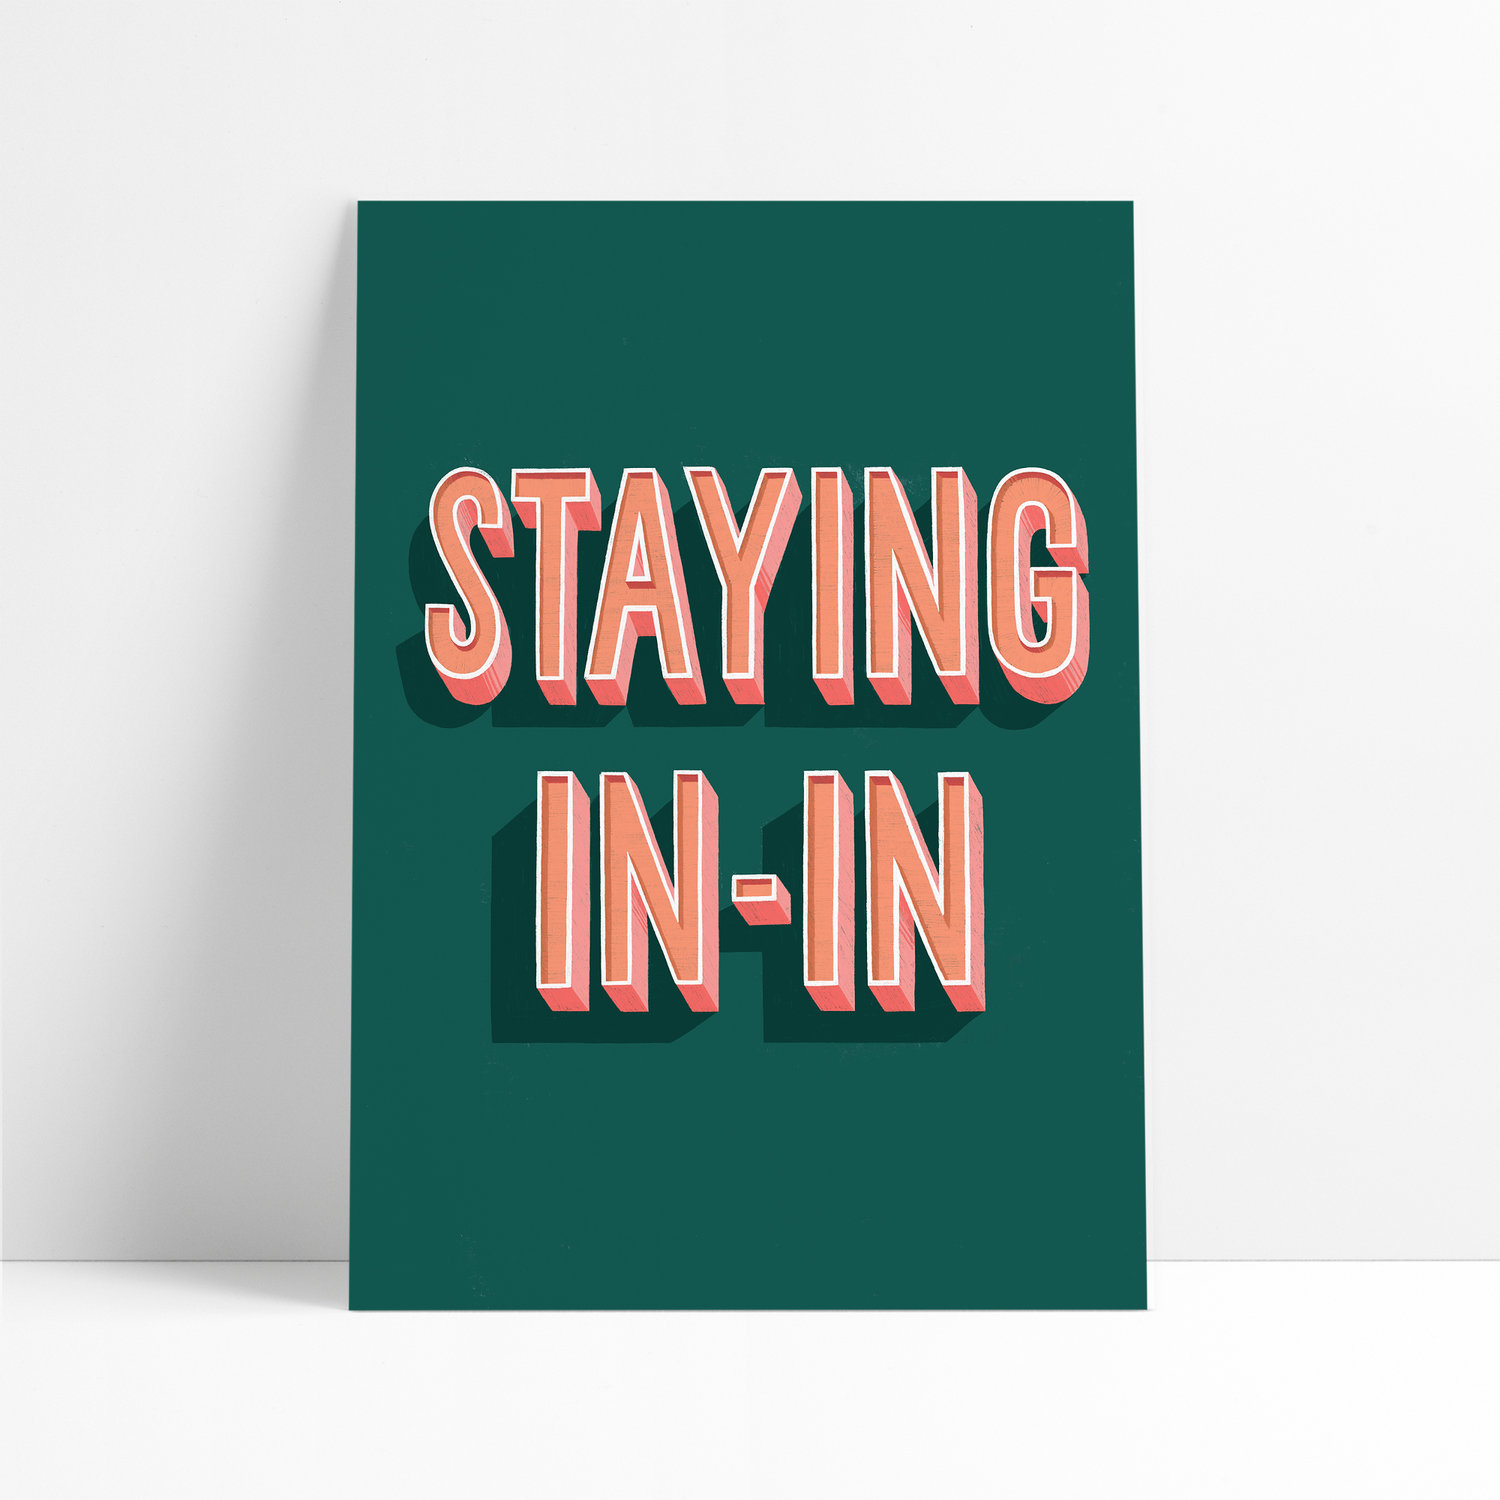 Staying In-In by Emma Nicol